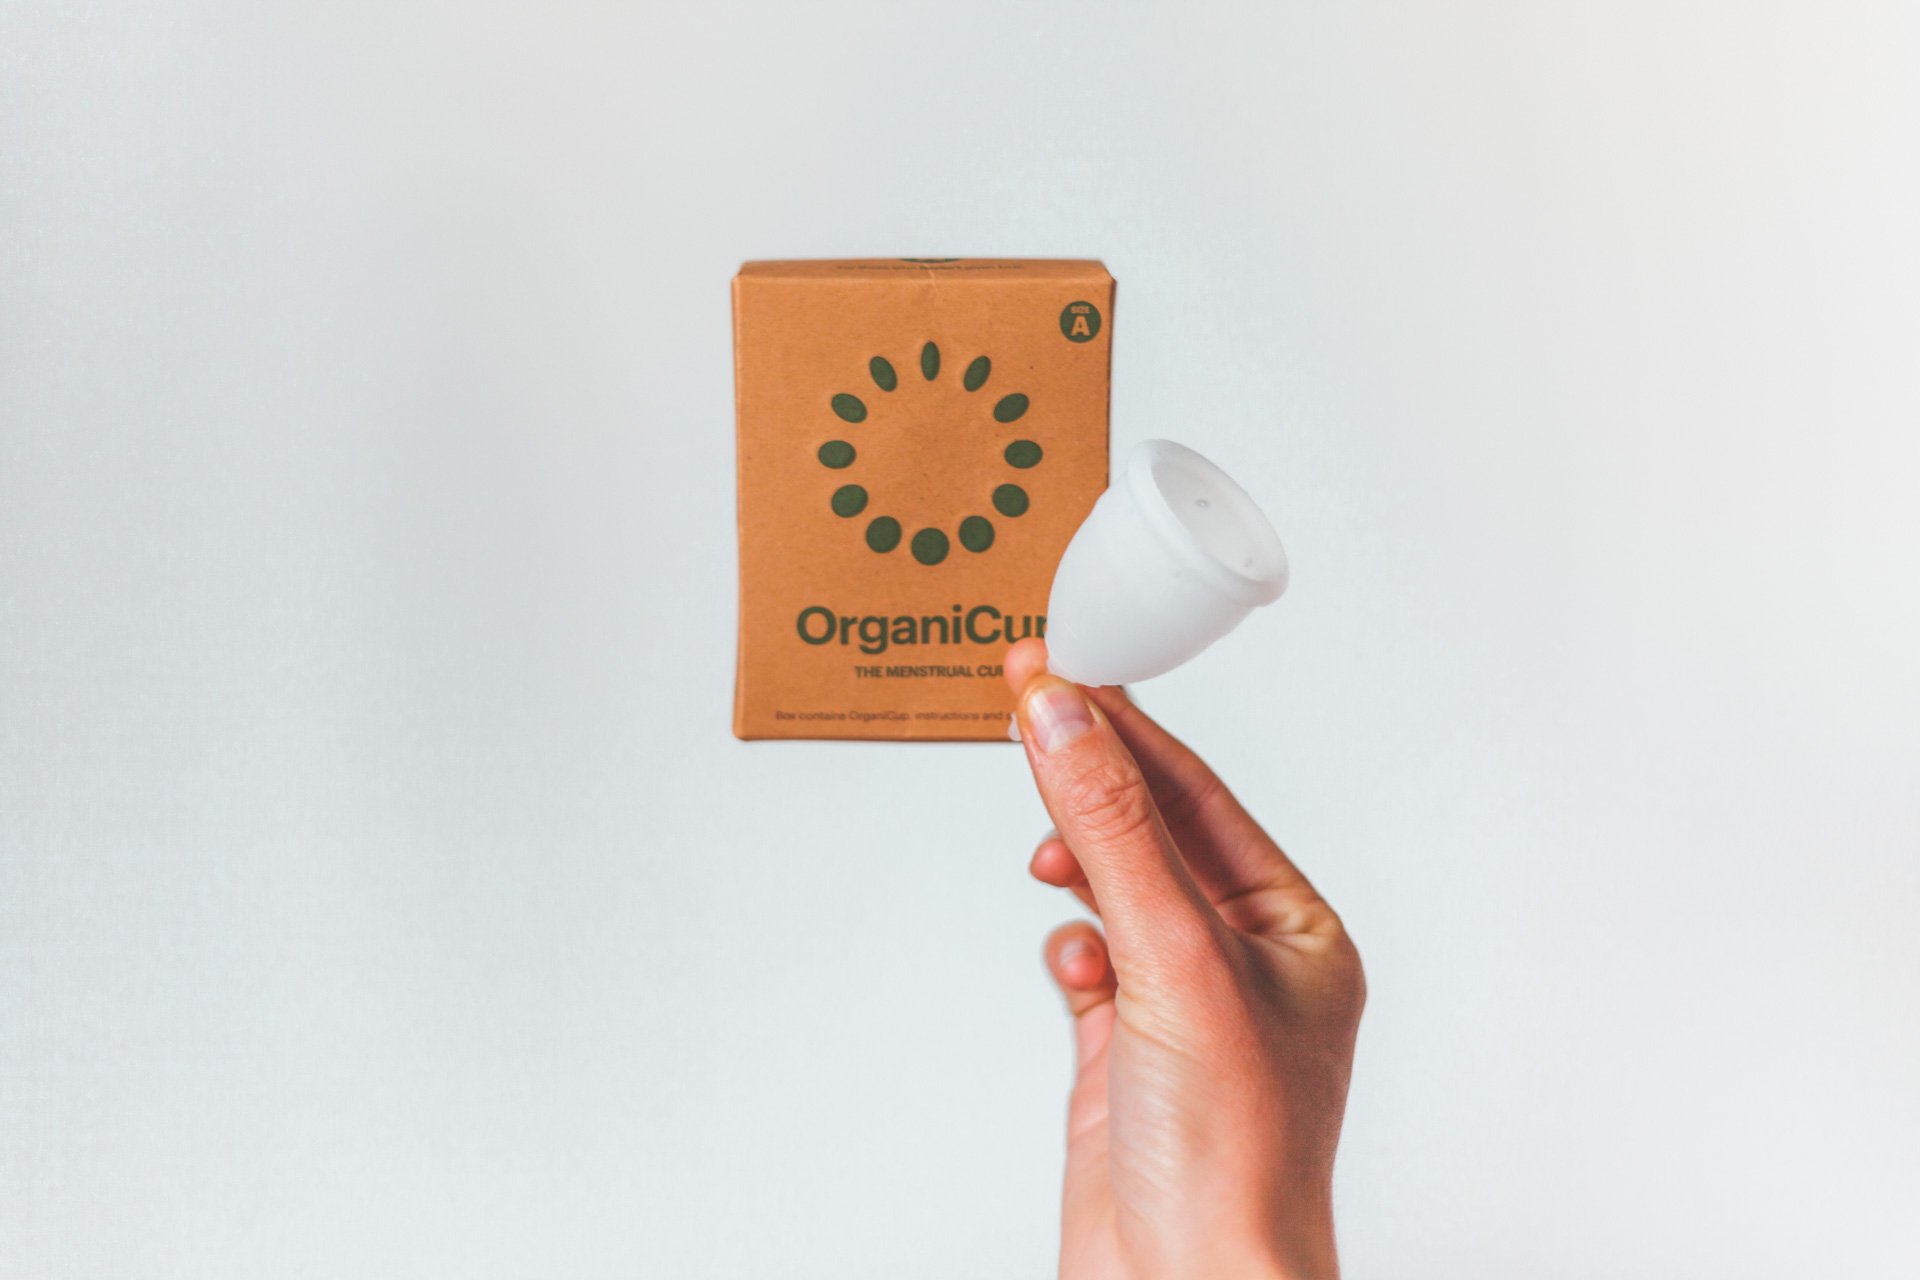 OrganiCup Mentrual Cup Travel Essentials